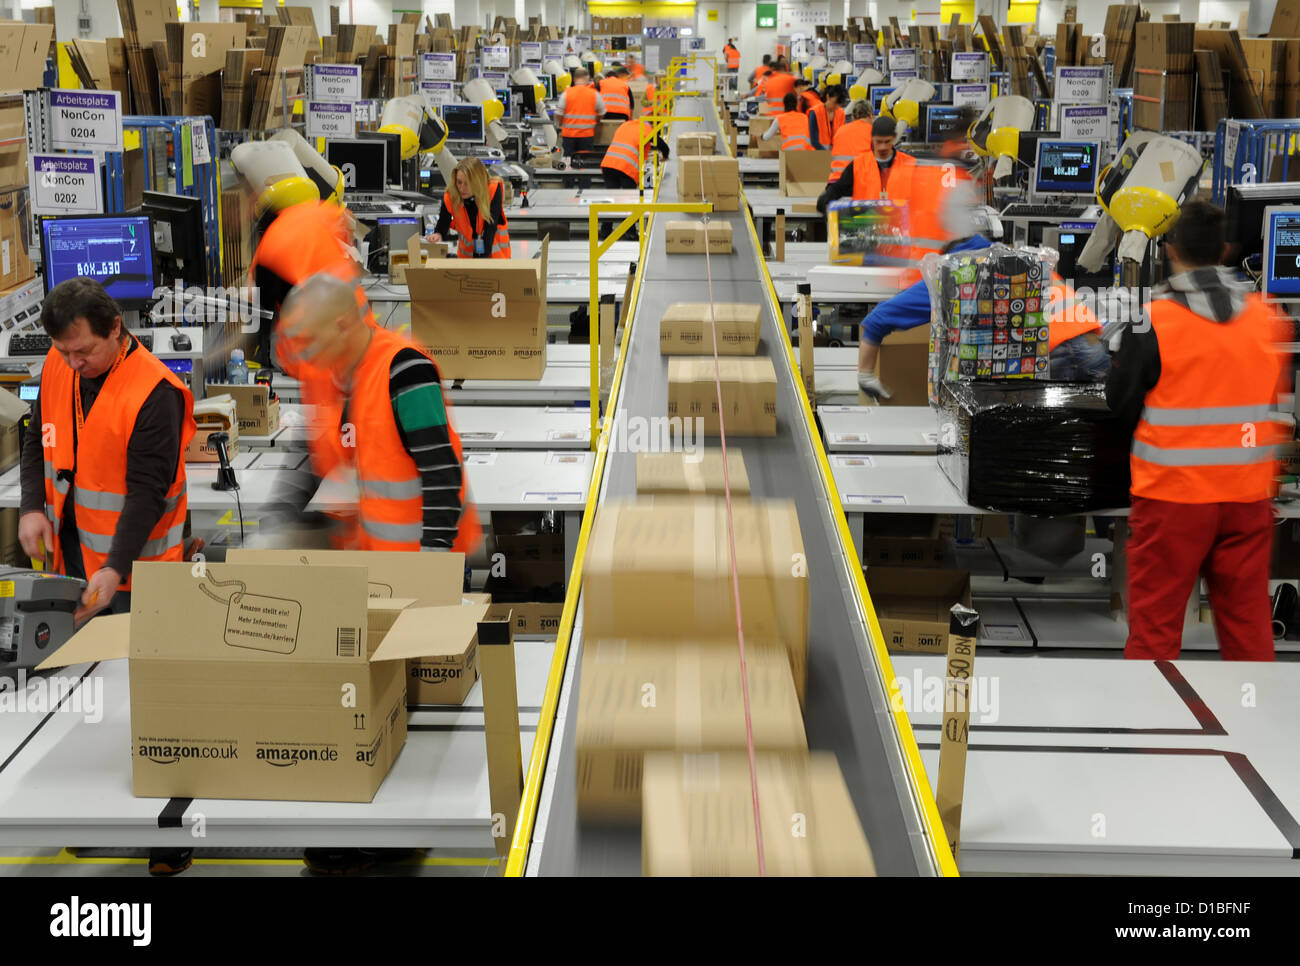 People work in the shipping department in the Amazon Logistics ...